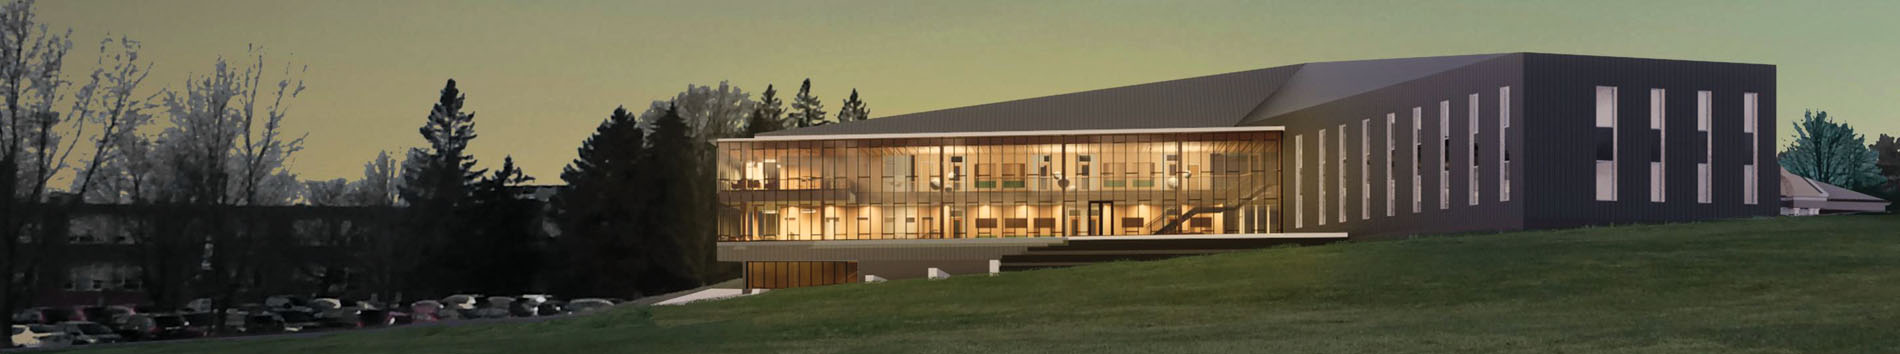 A rendering of the new College of Business building